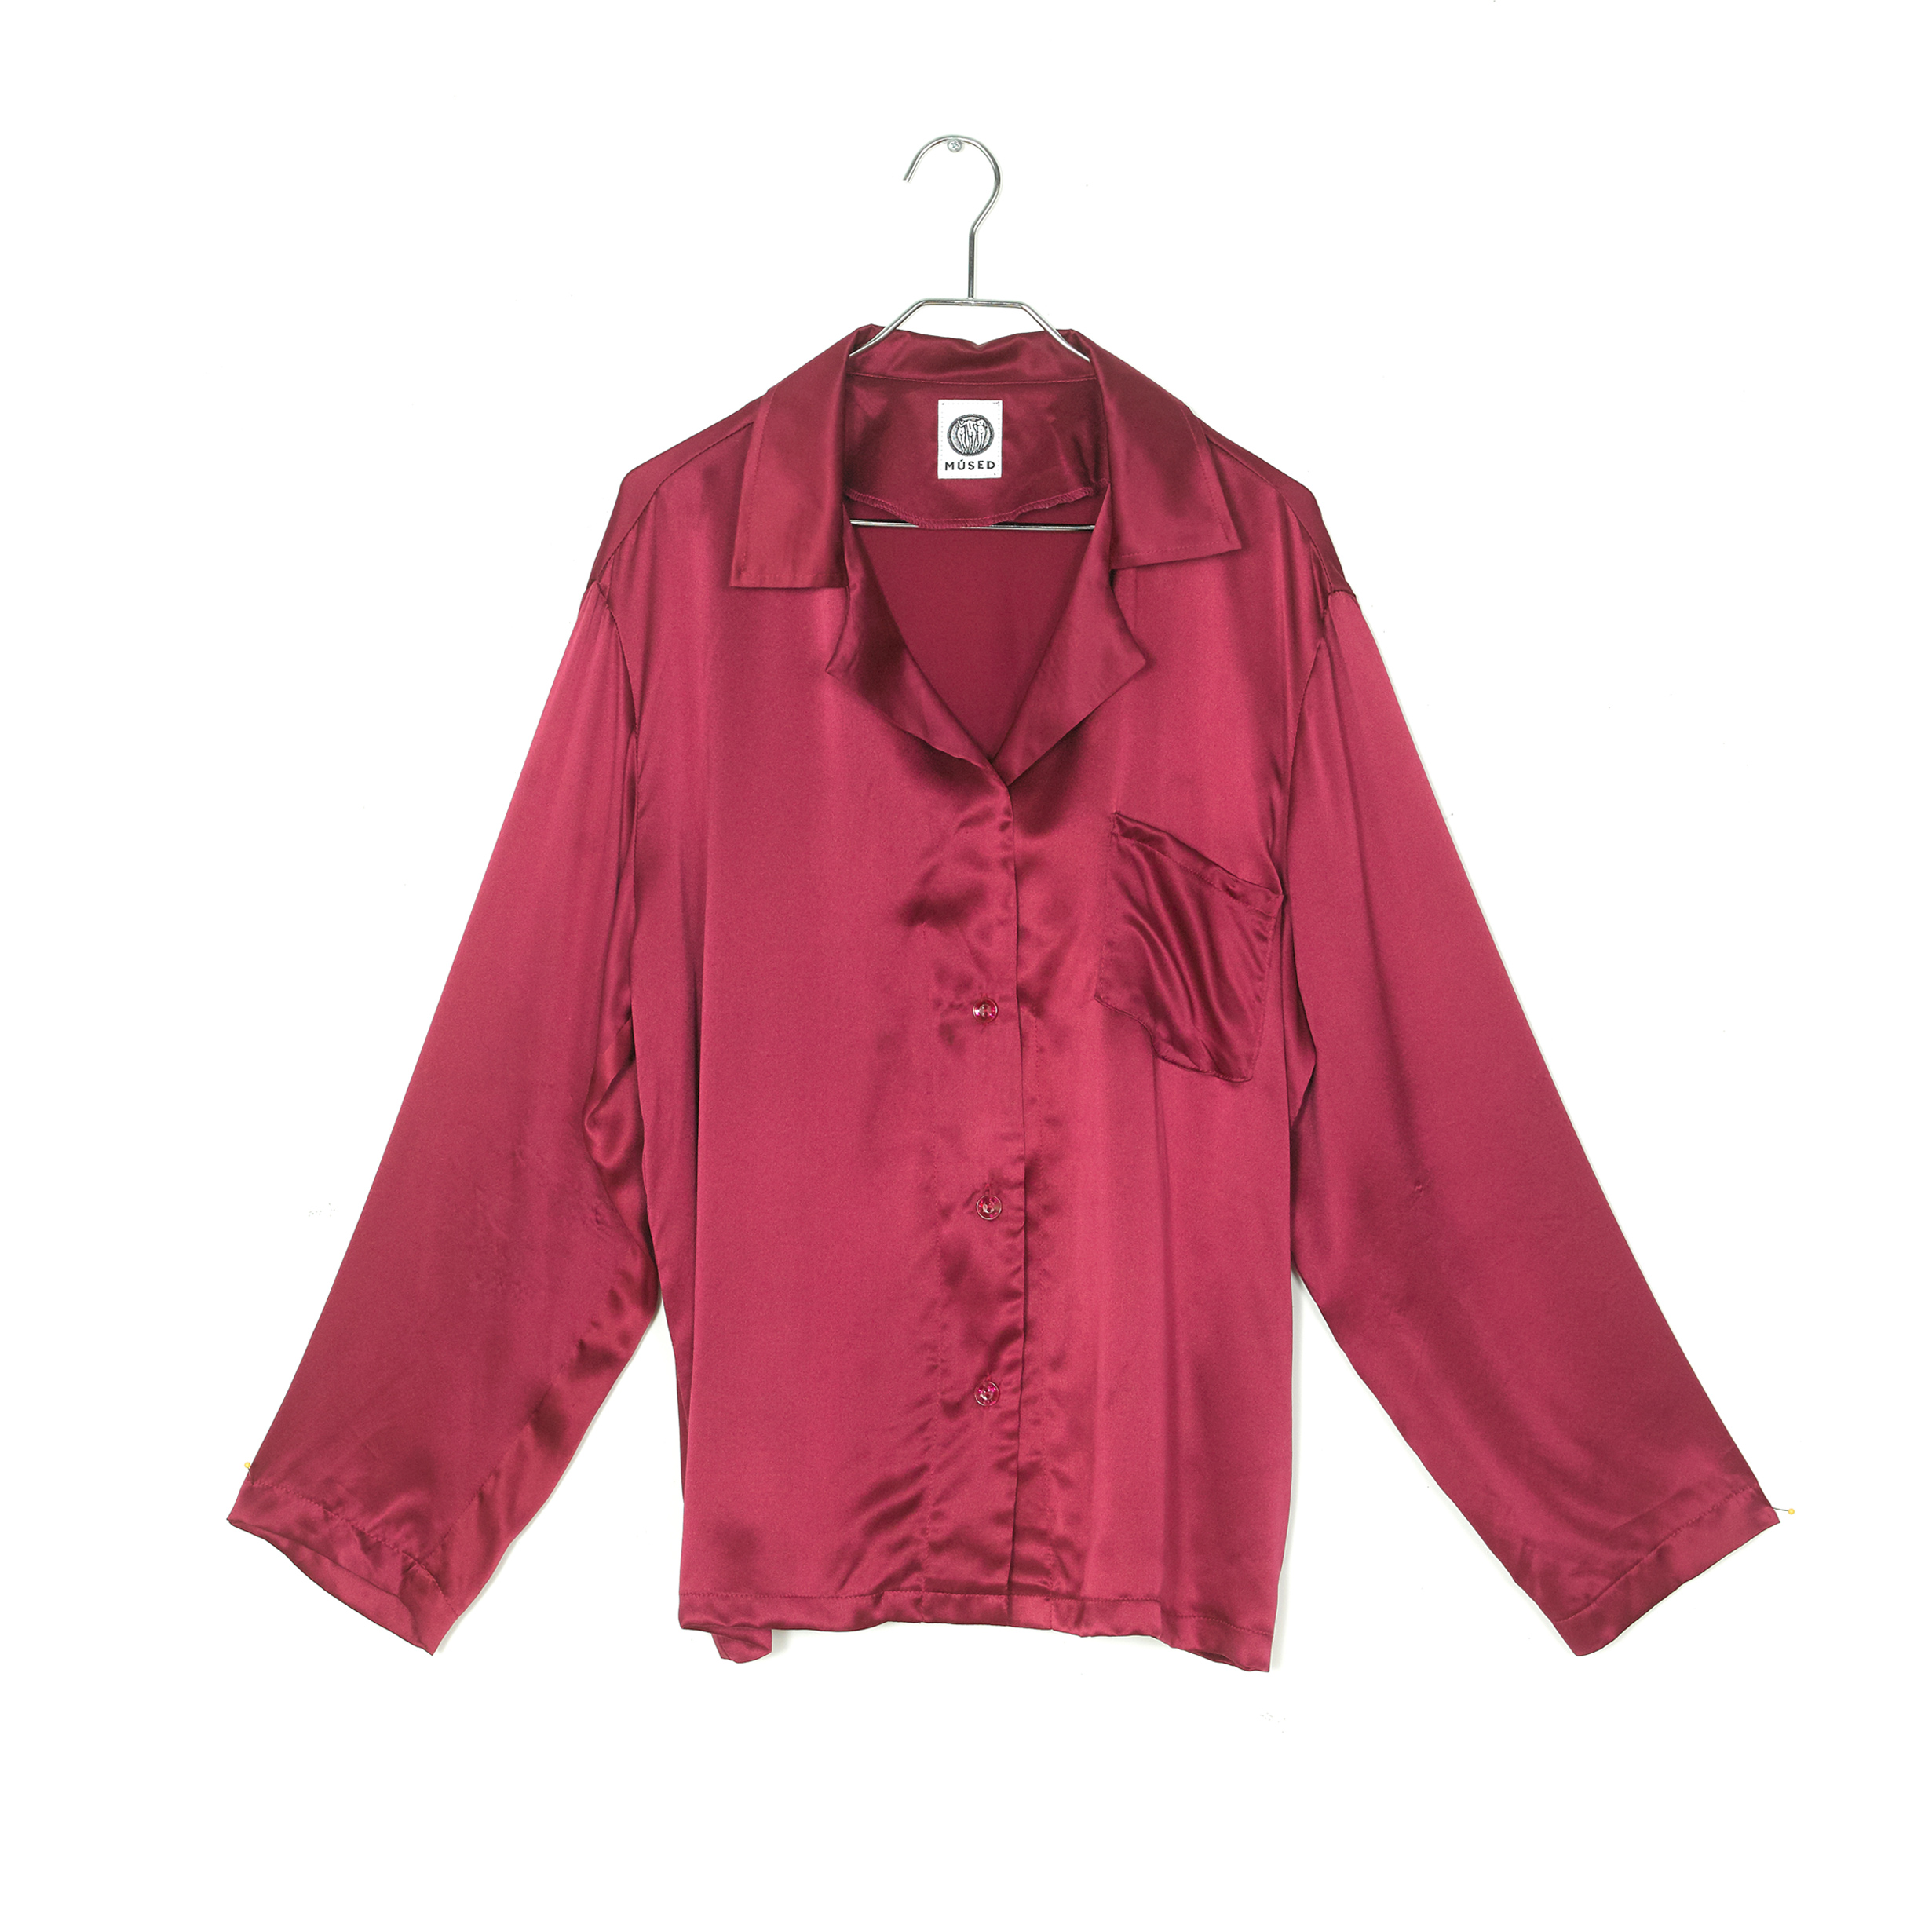 Silk Pajama Day Wear Top<br>$320